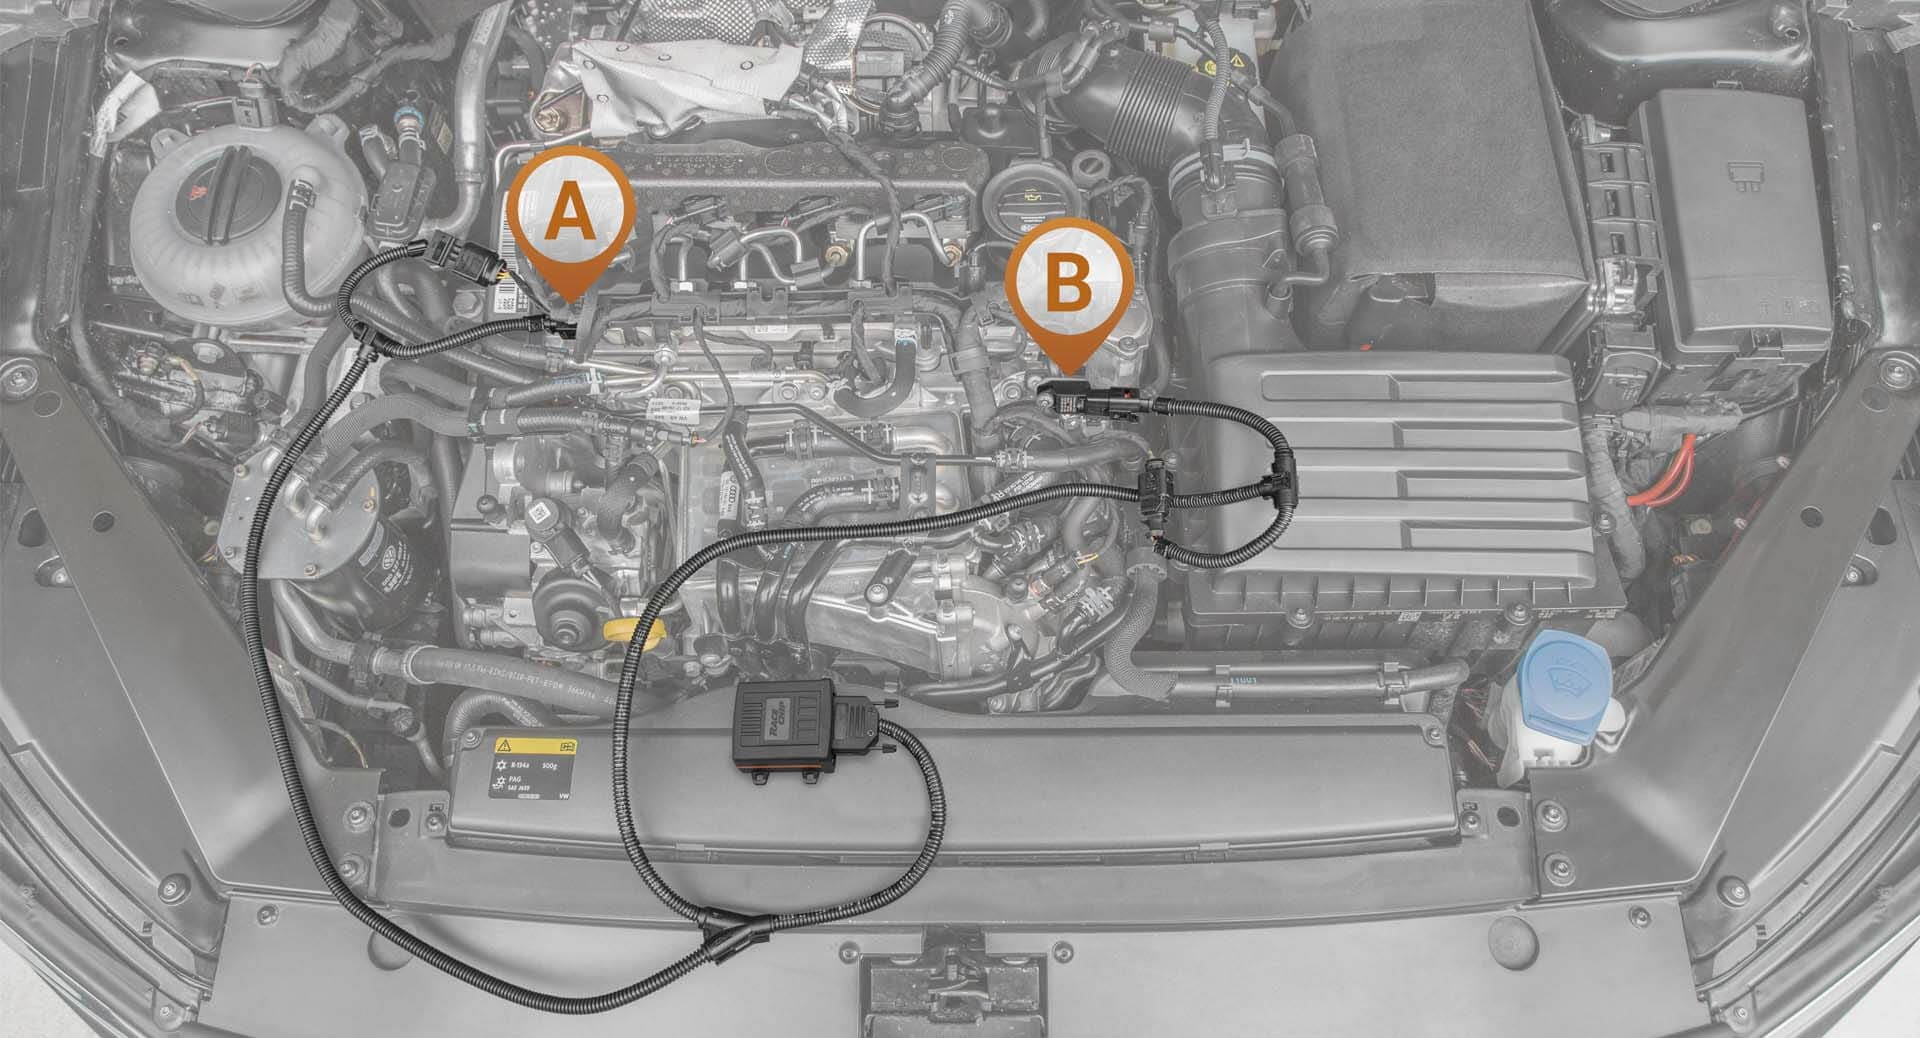 Locating the connection in the engine bay